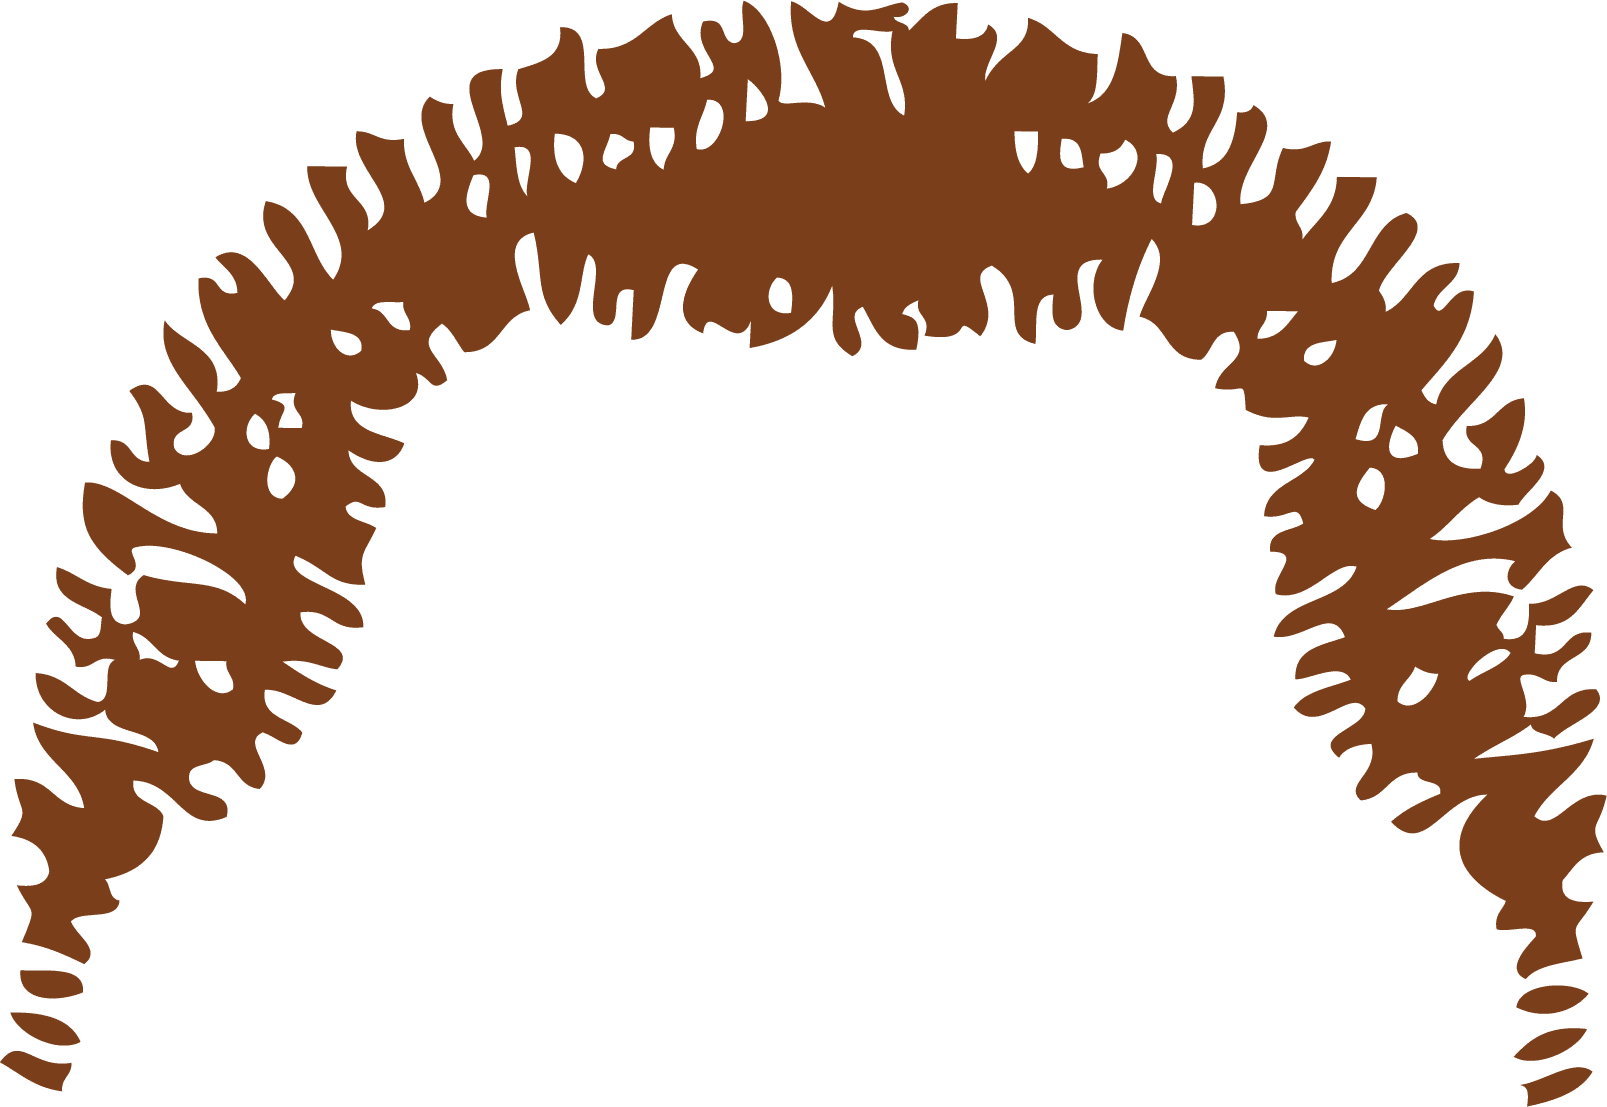 Free hair cliparts download. Afro clipart clipart black and white